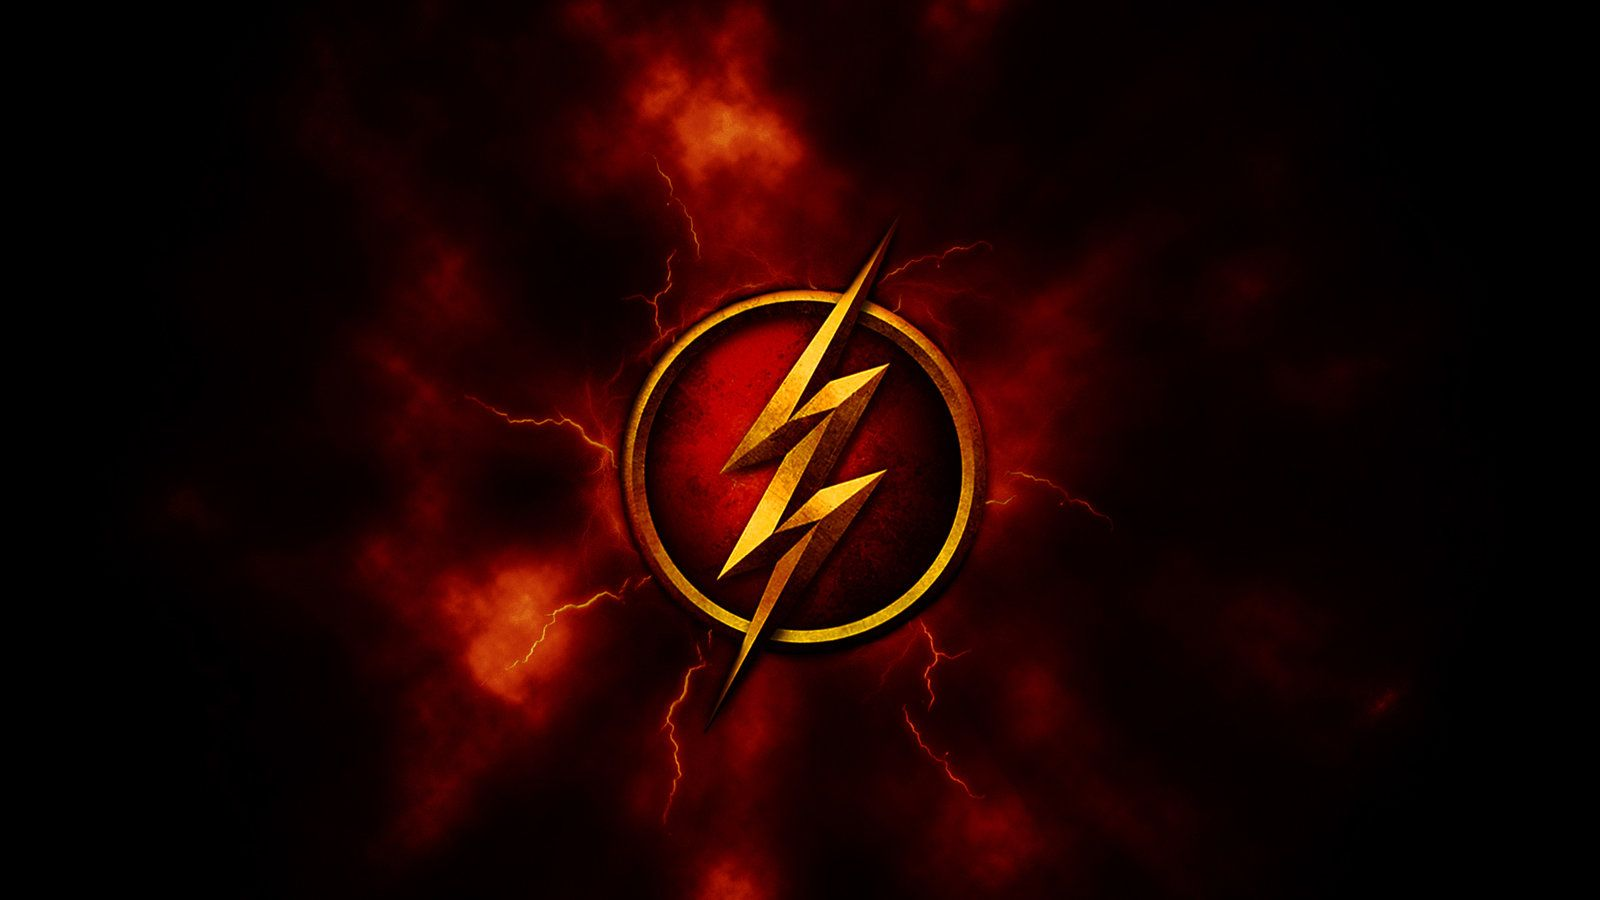 Flash Wallpaper Hd Resolution Is Cool Wallpapers in 2019.